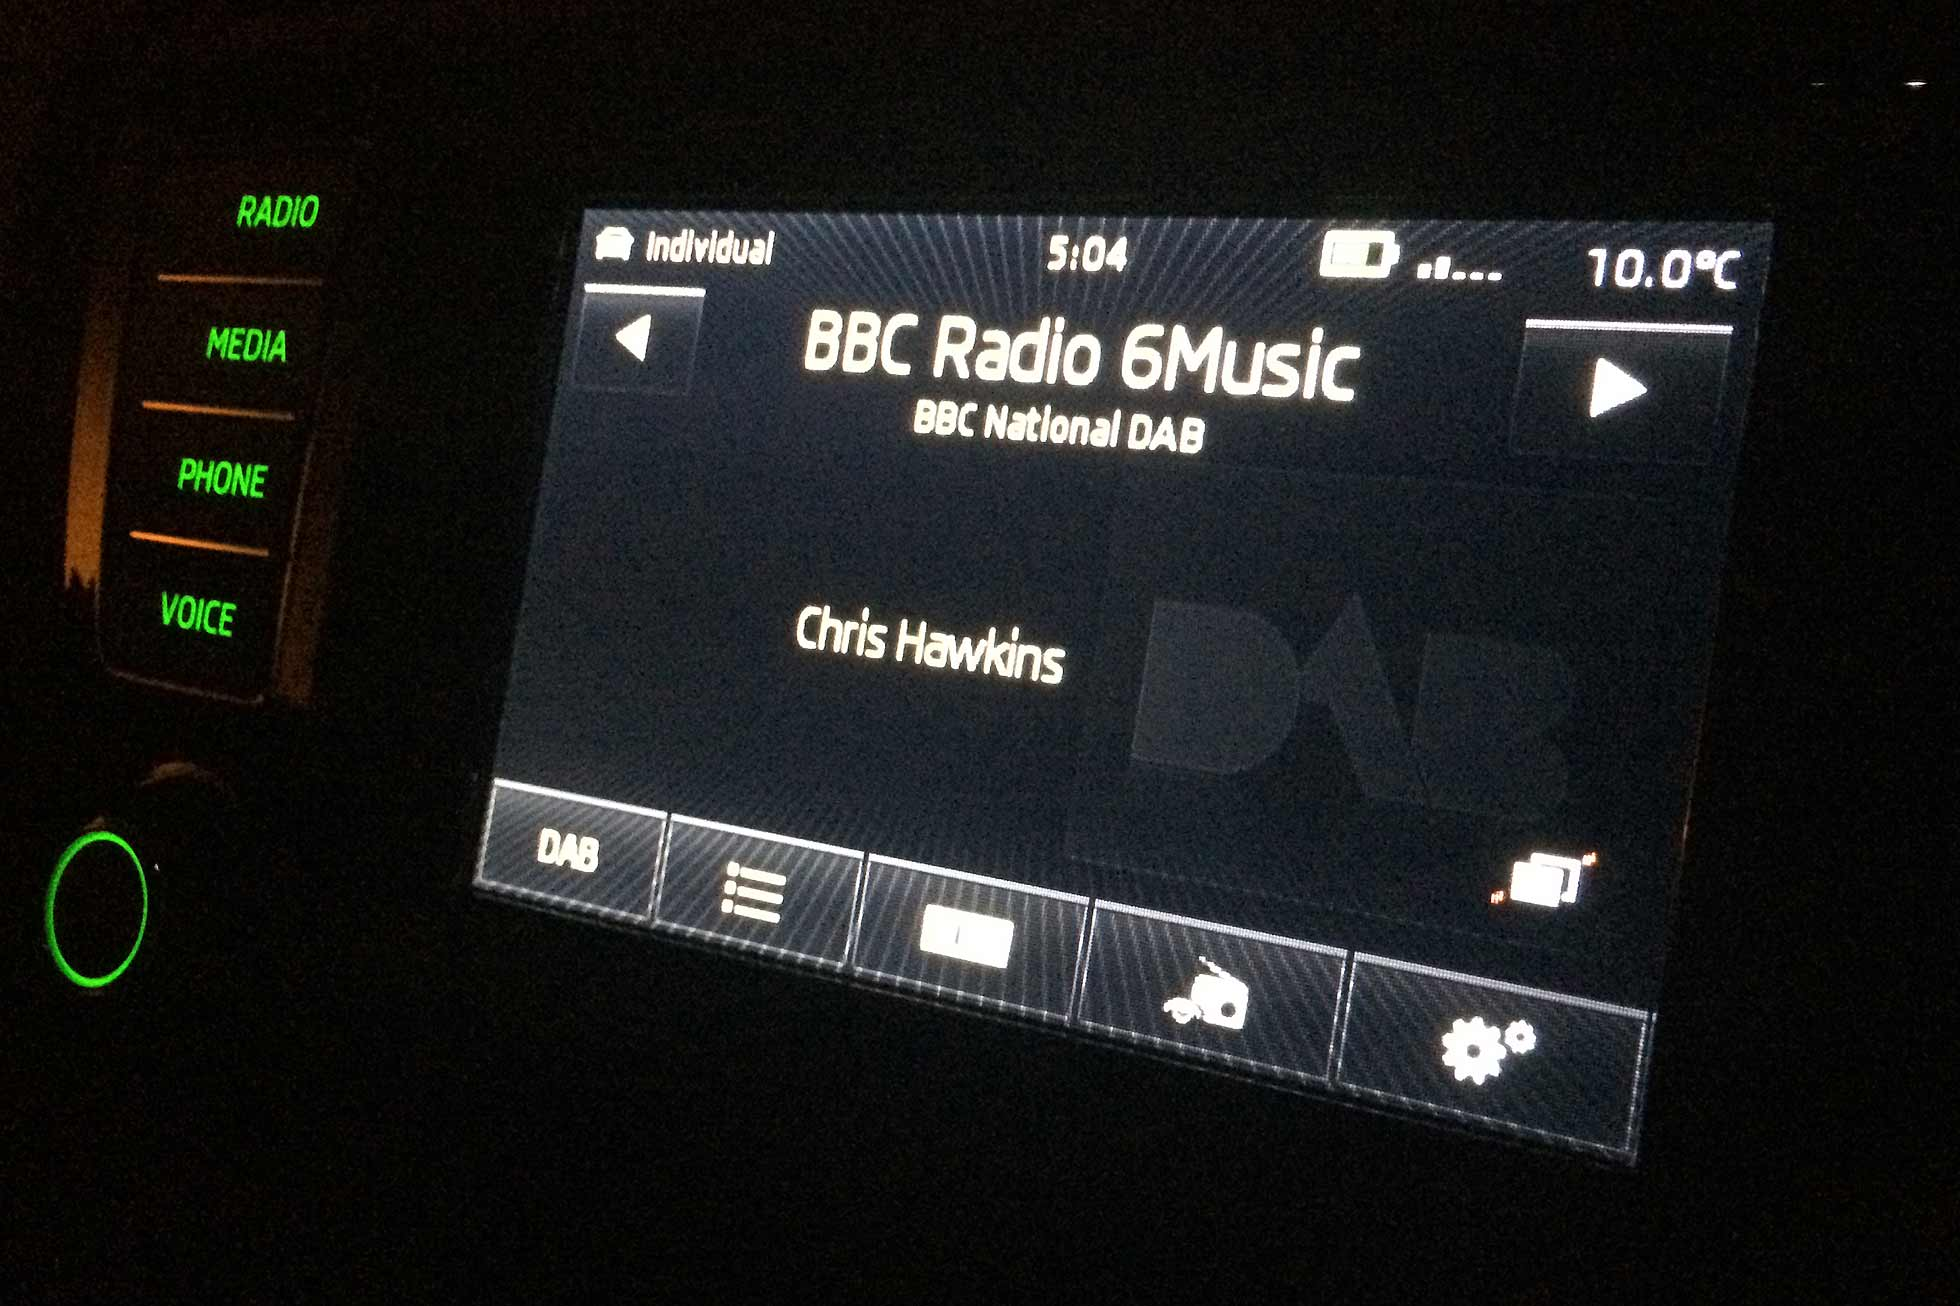 BBC Radio 6Music in car